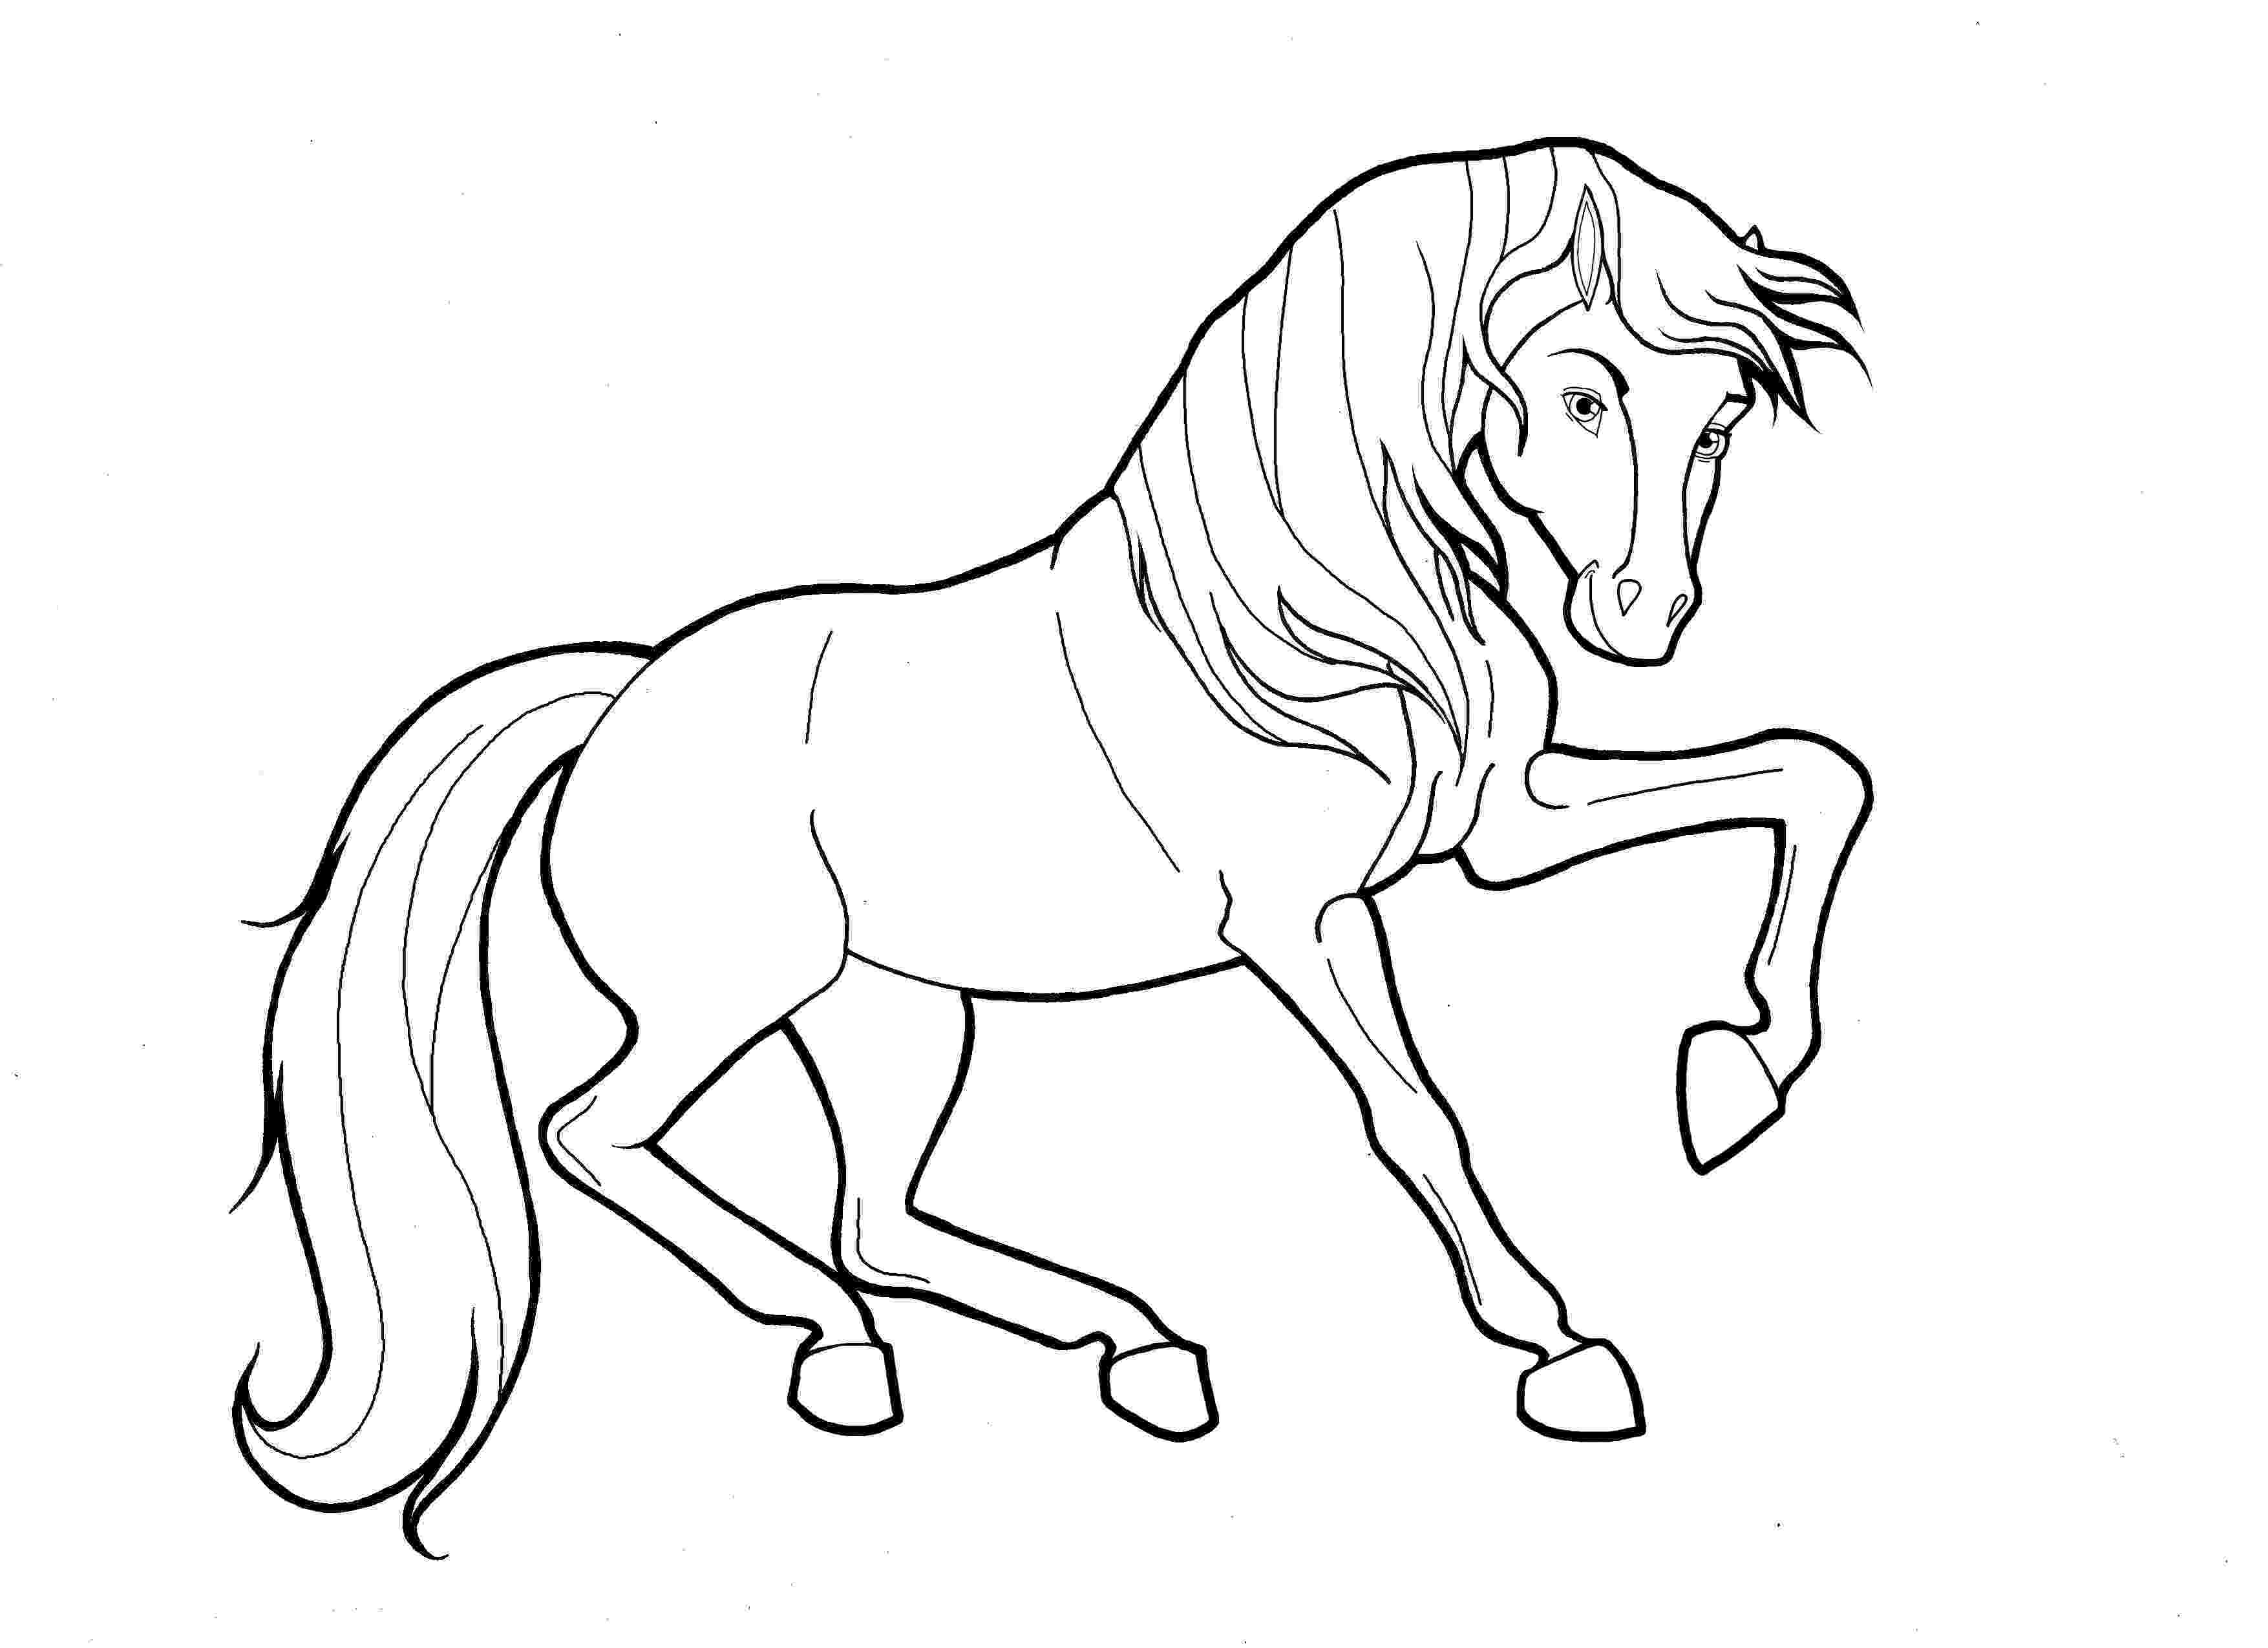 pictures of horses to color and print 30 best horse coloring pages ideas we need fun to horses print of and color pictures